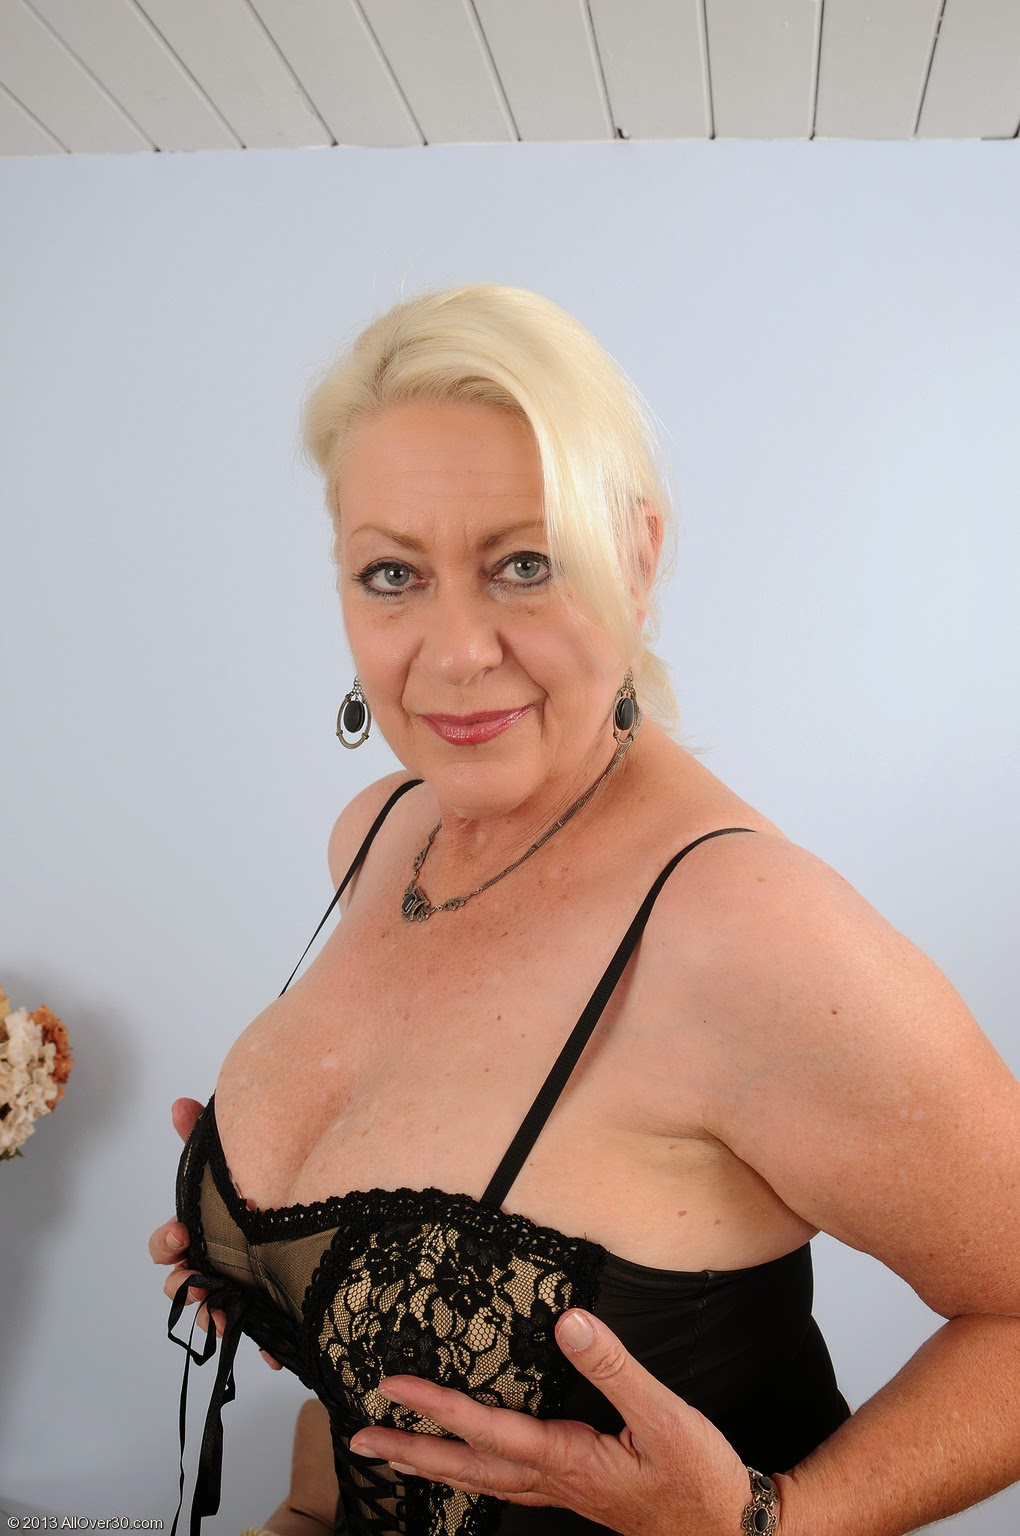 At 60 Years Old Angeliques Meaty Boobs Are Looking Sexy